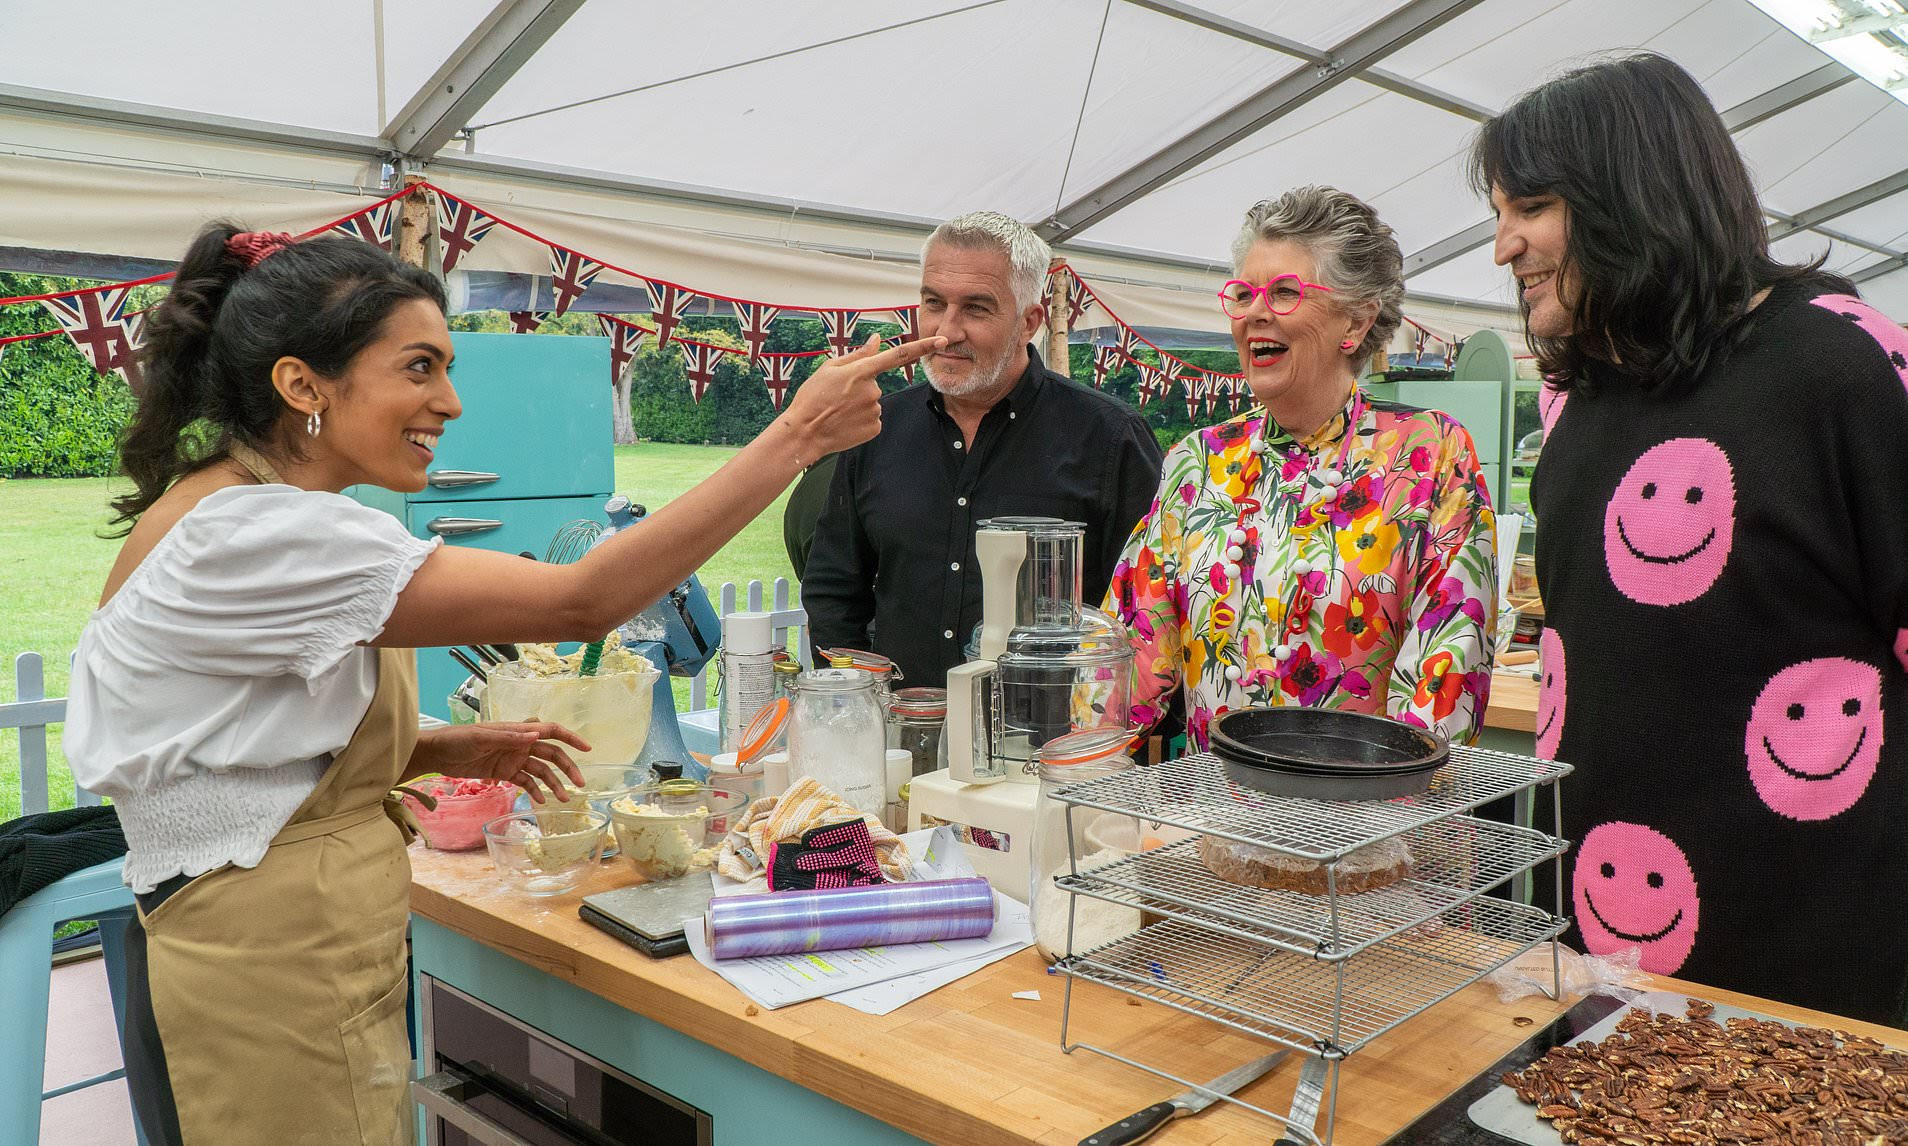 The Great British Bake Off FIRST LOOK: 12 new contestants take on a series of challenges